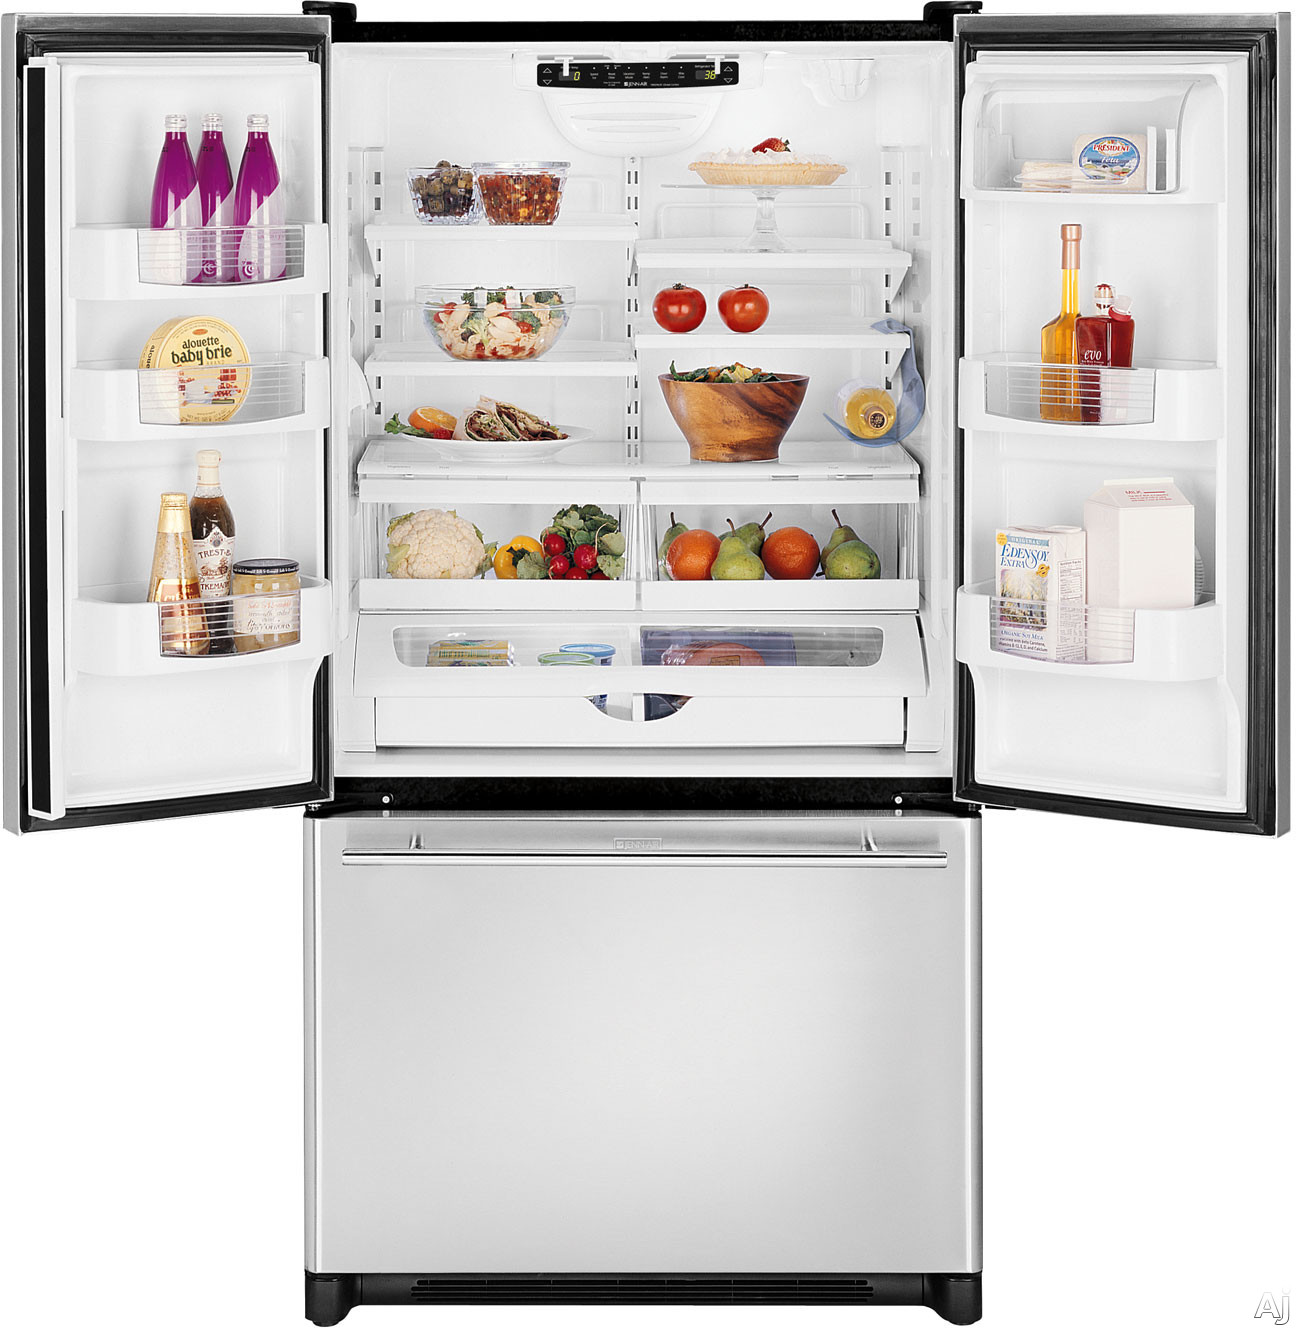 Jenn Air Refrigerator Repair Ice Maker Images …